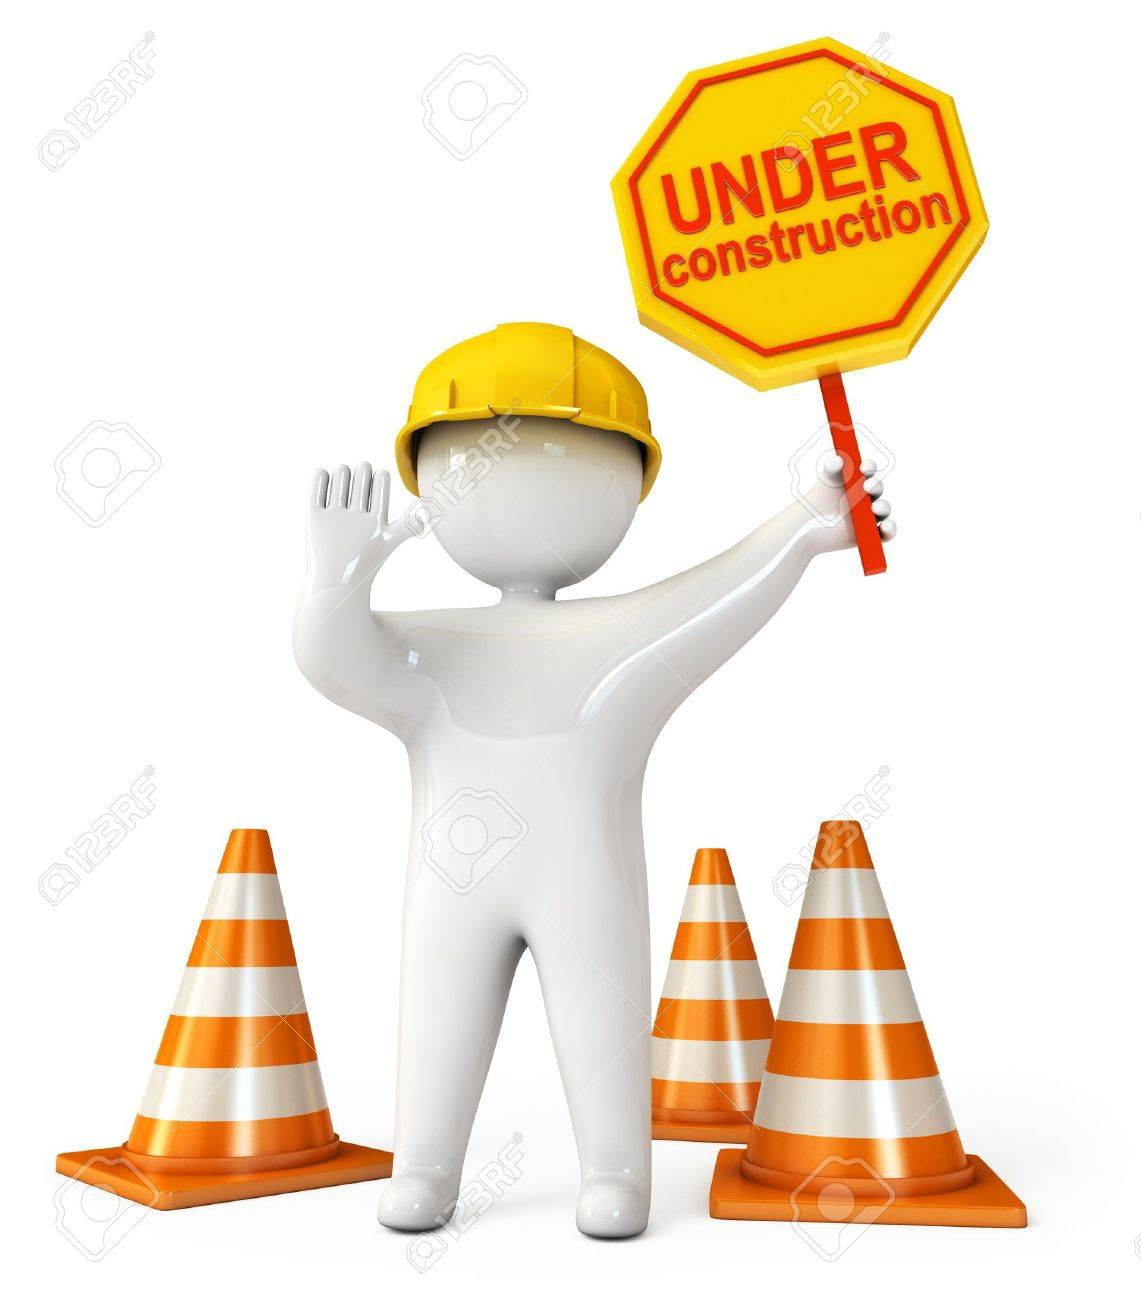 Image result for stop under construction